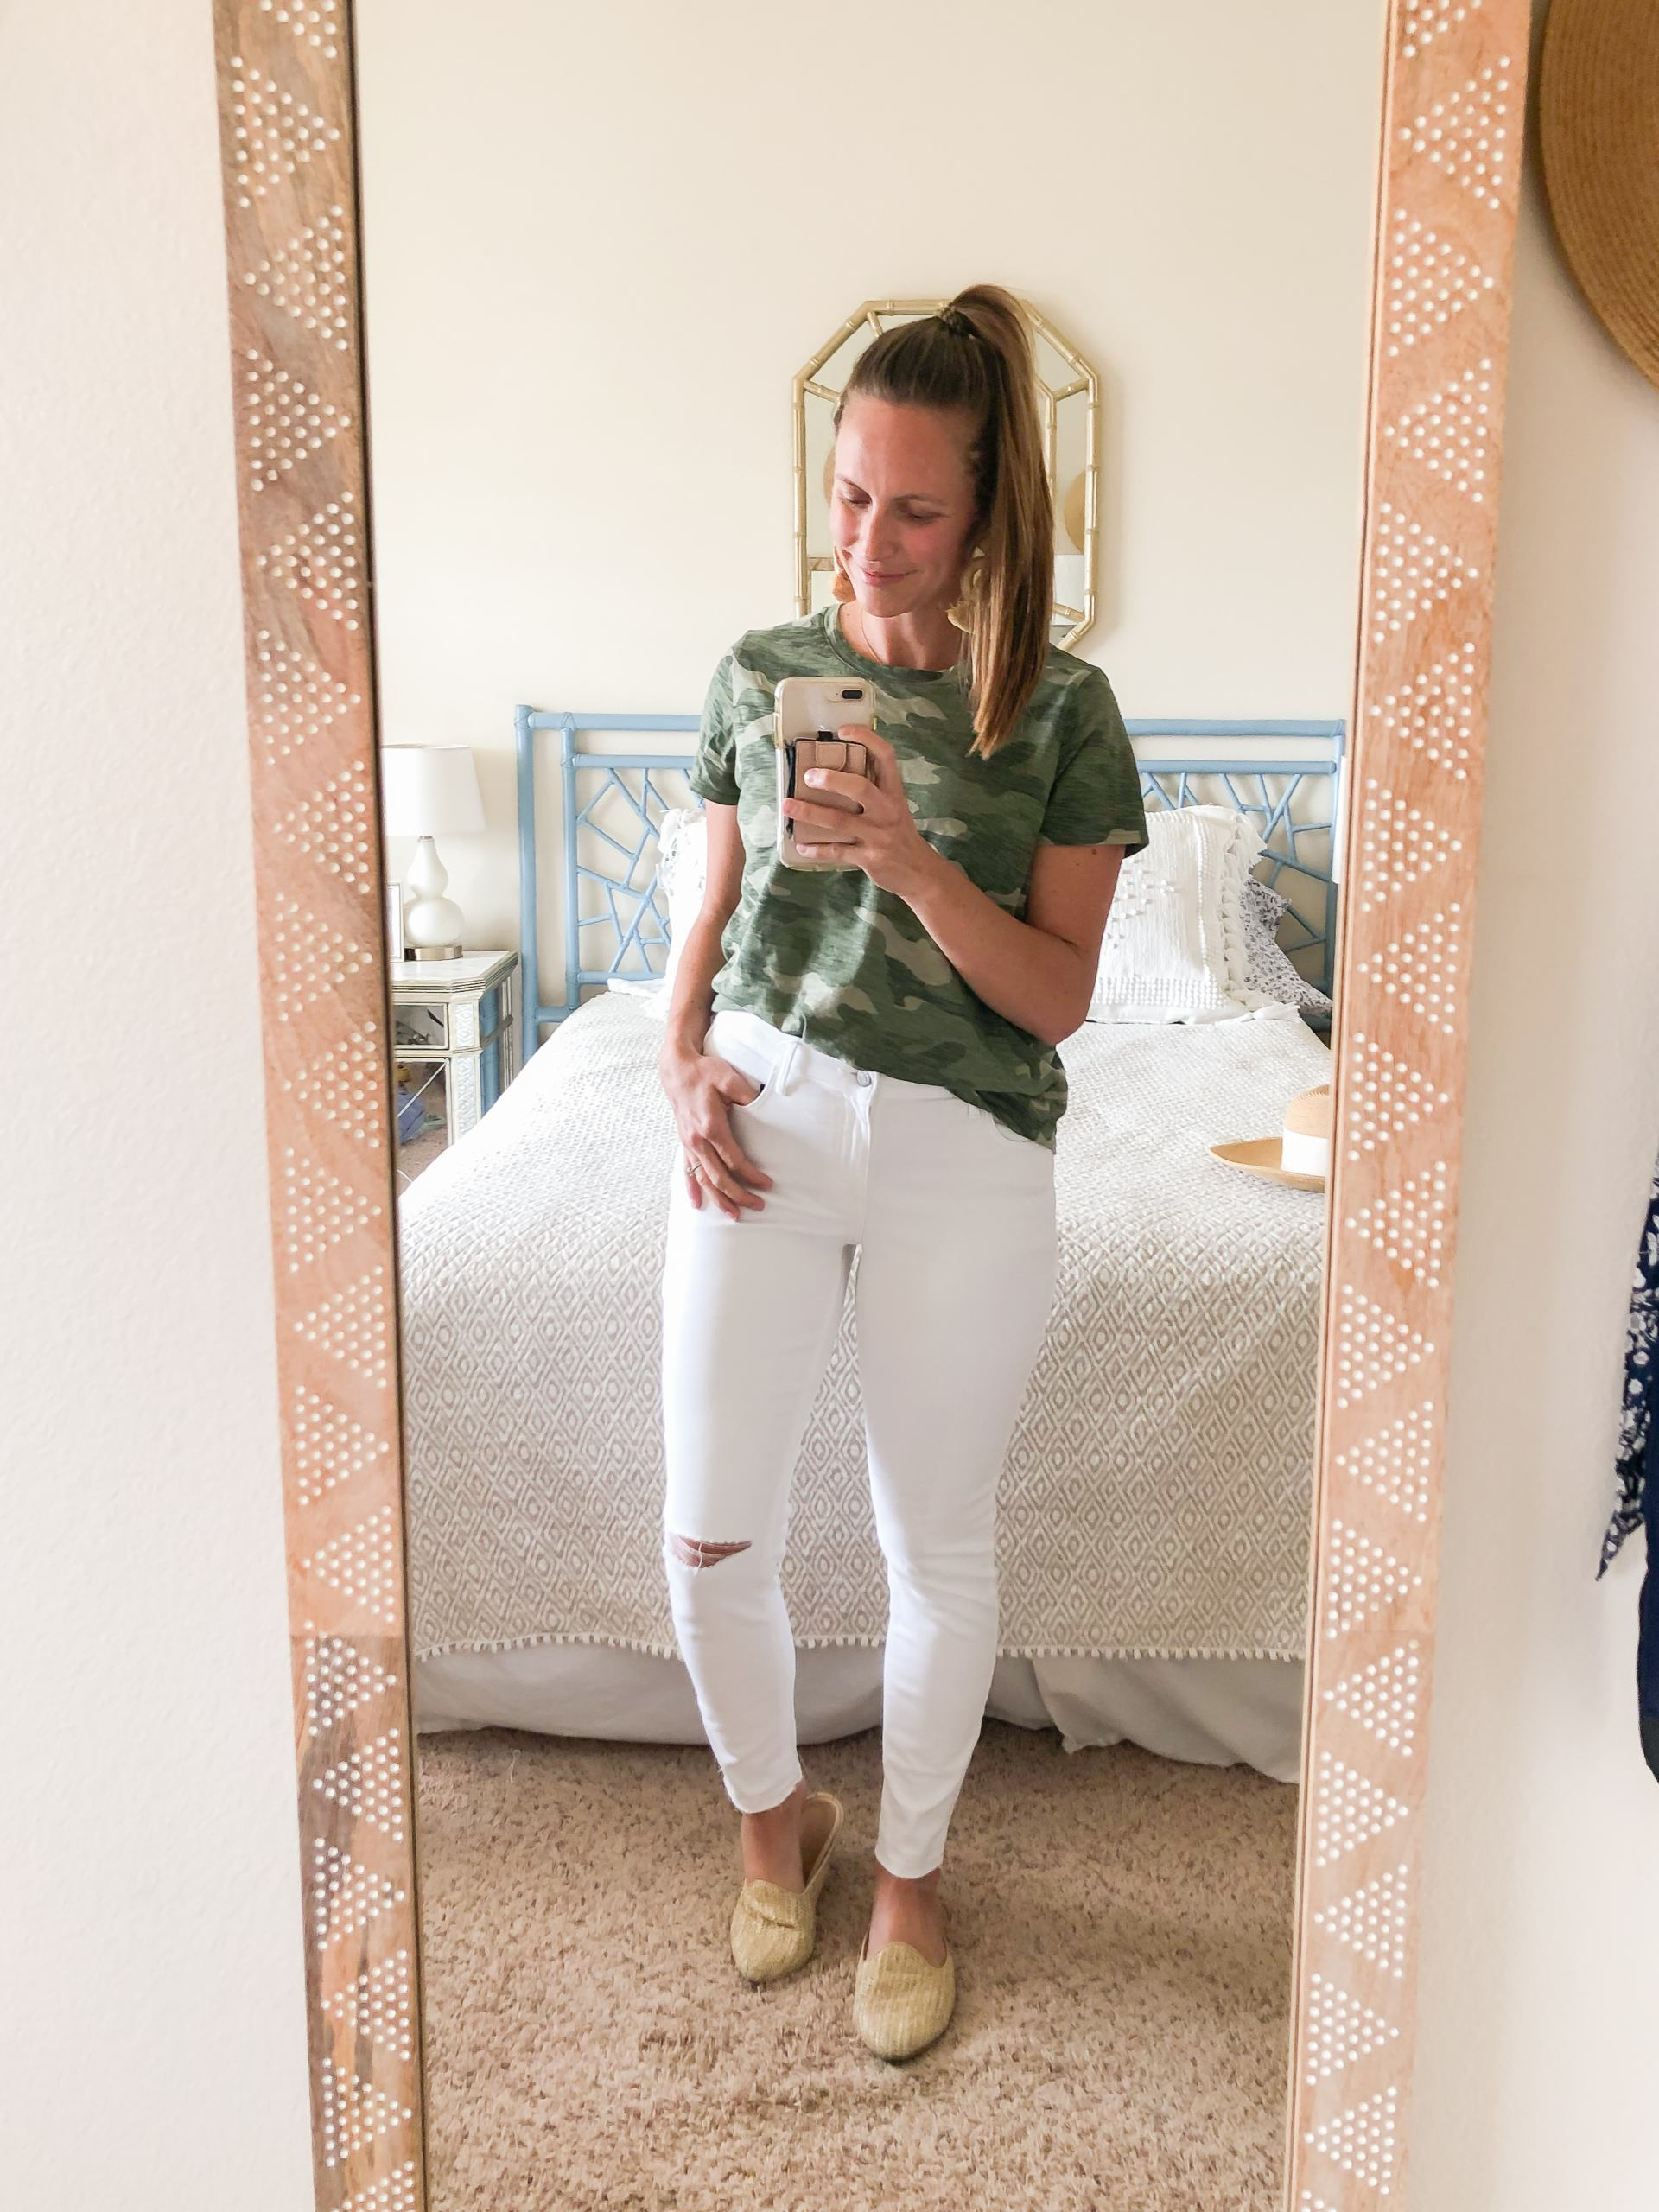 camo tshirt - white jeans - spring outfit ideas - mom friendly outfit - how to style a camo shirt - spring style